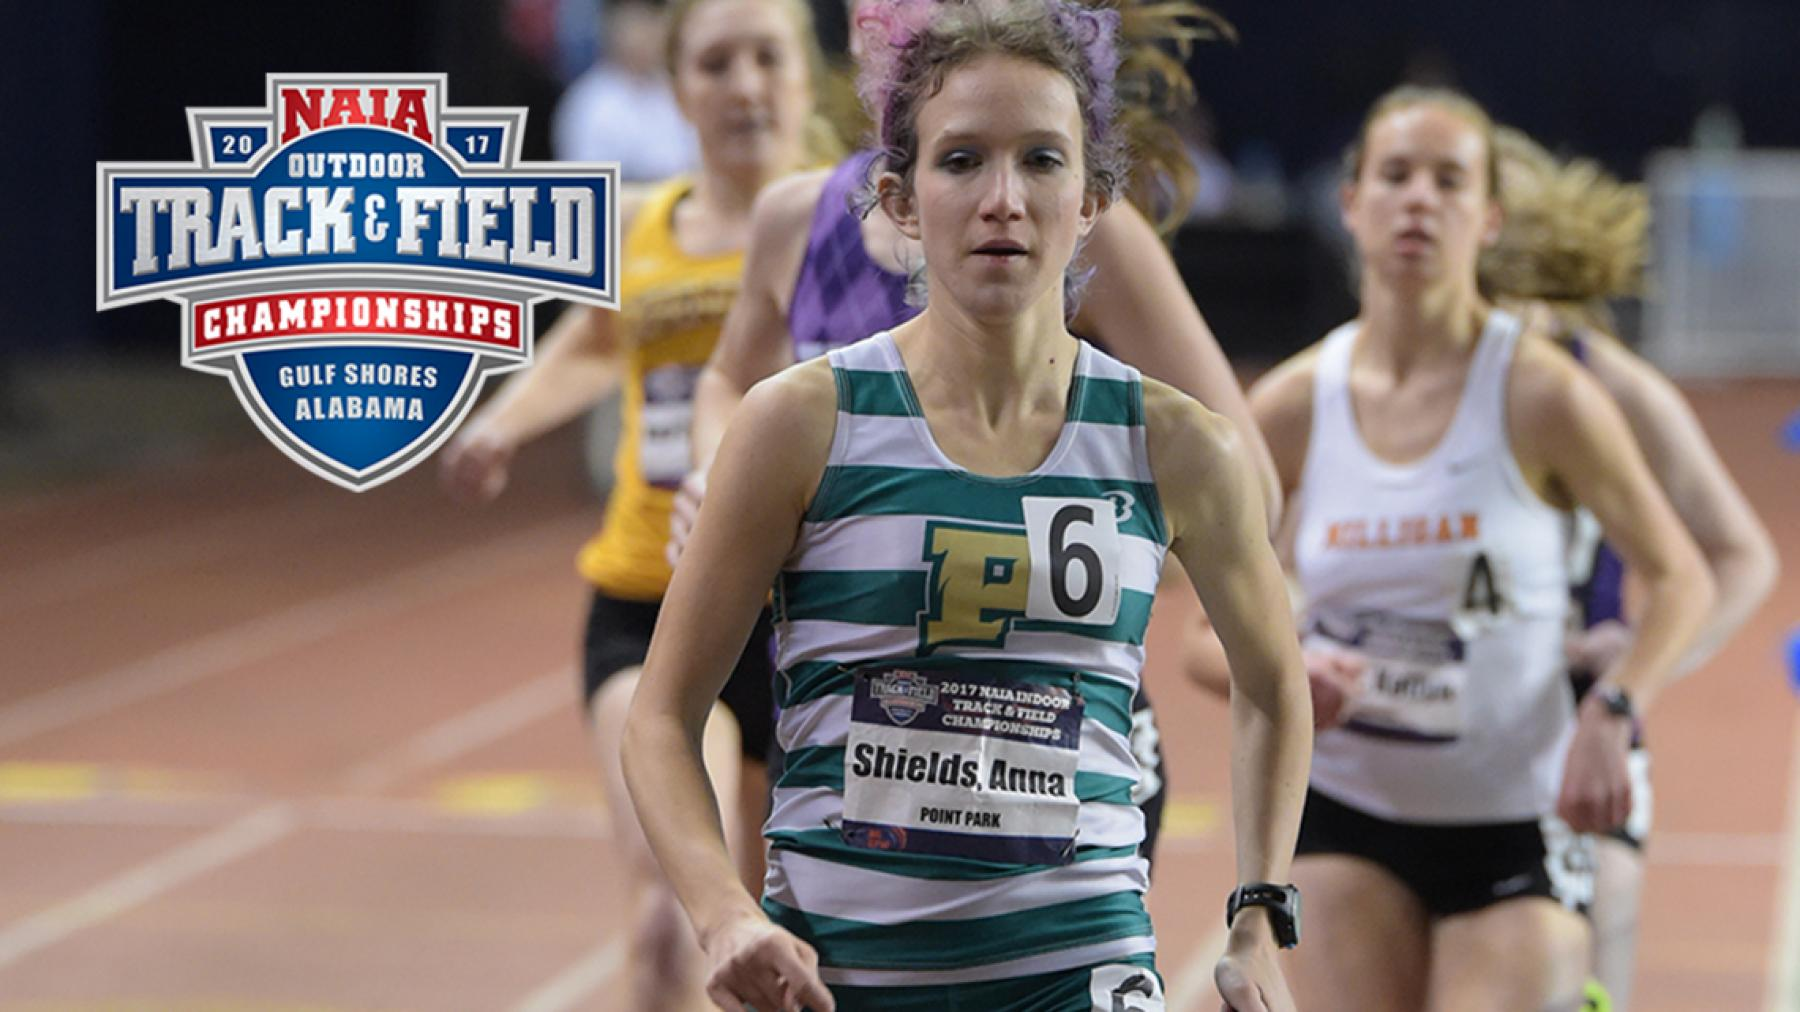 NAIA Women's Outdoor Track & Field National Championship Preview